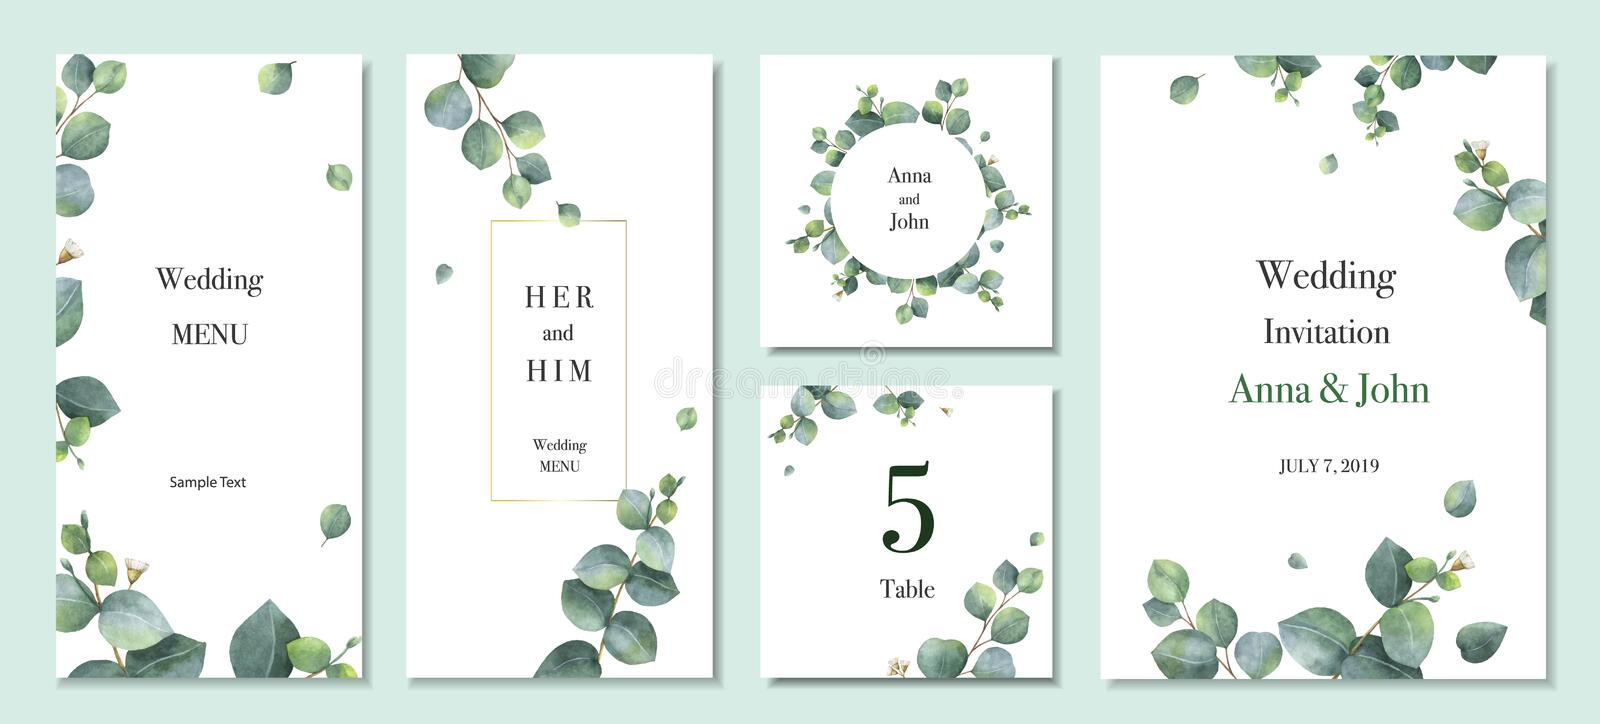 Watercolor vector set wedding invitation card template design with green eucalyptus leaves. royalty free illustration